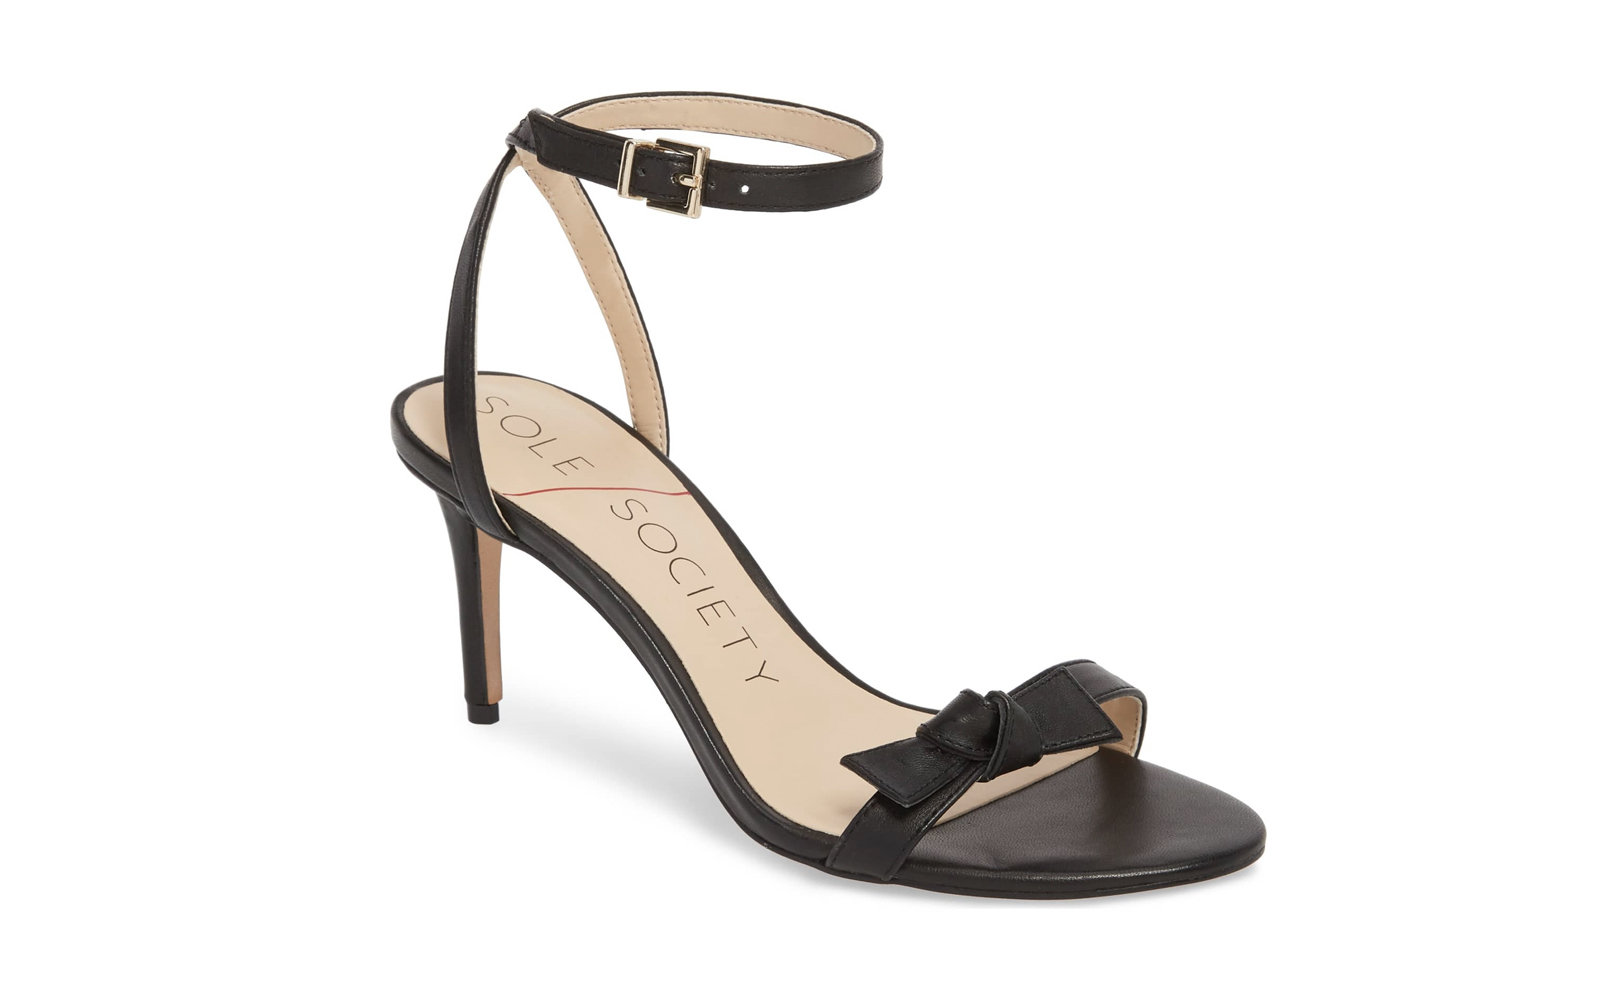 c05410fa05043 Sole Society  Avrilie  Knotted Sandal. Best Sandals from the Nordstrom Sale